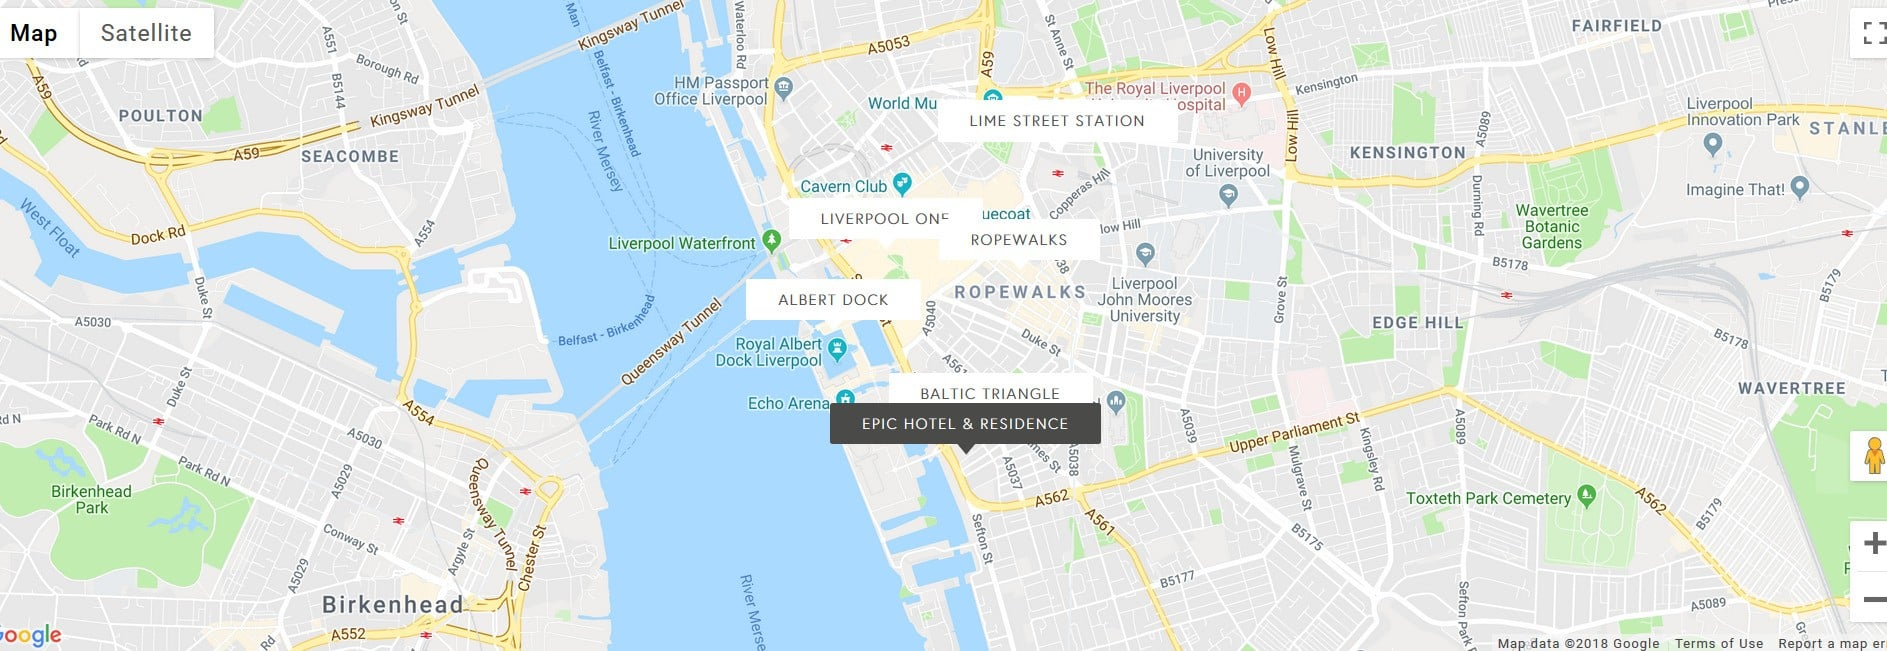 Epic Hotel Residences Liverpool - location